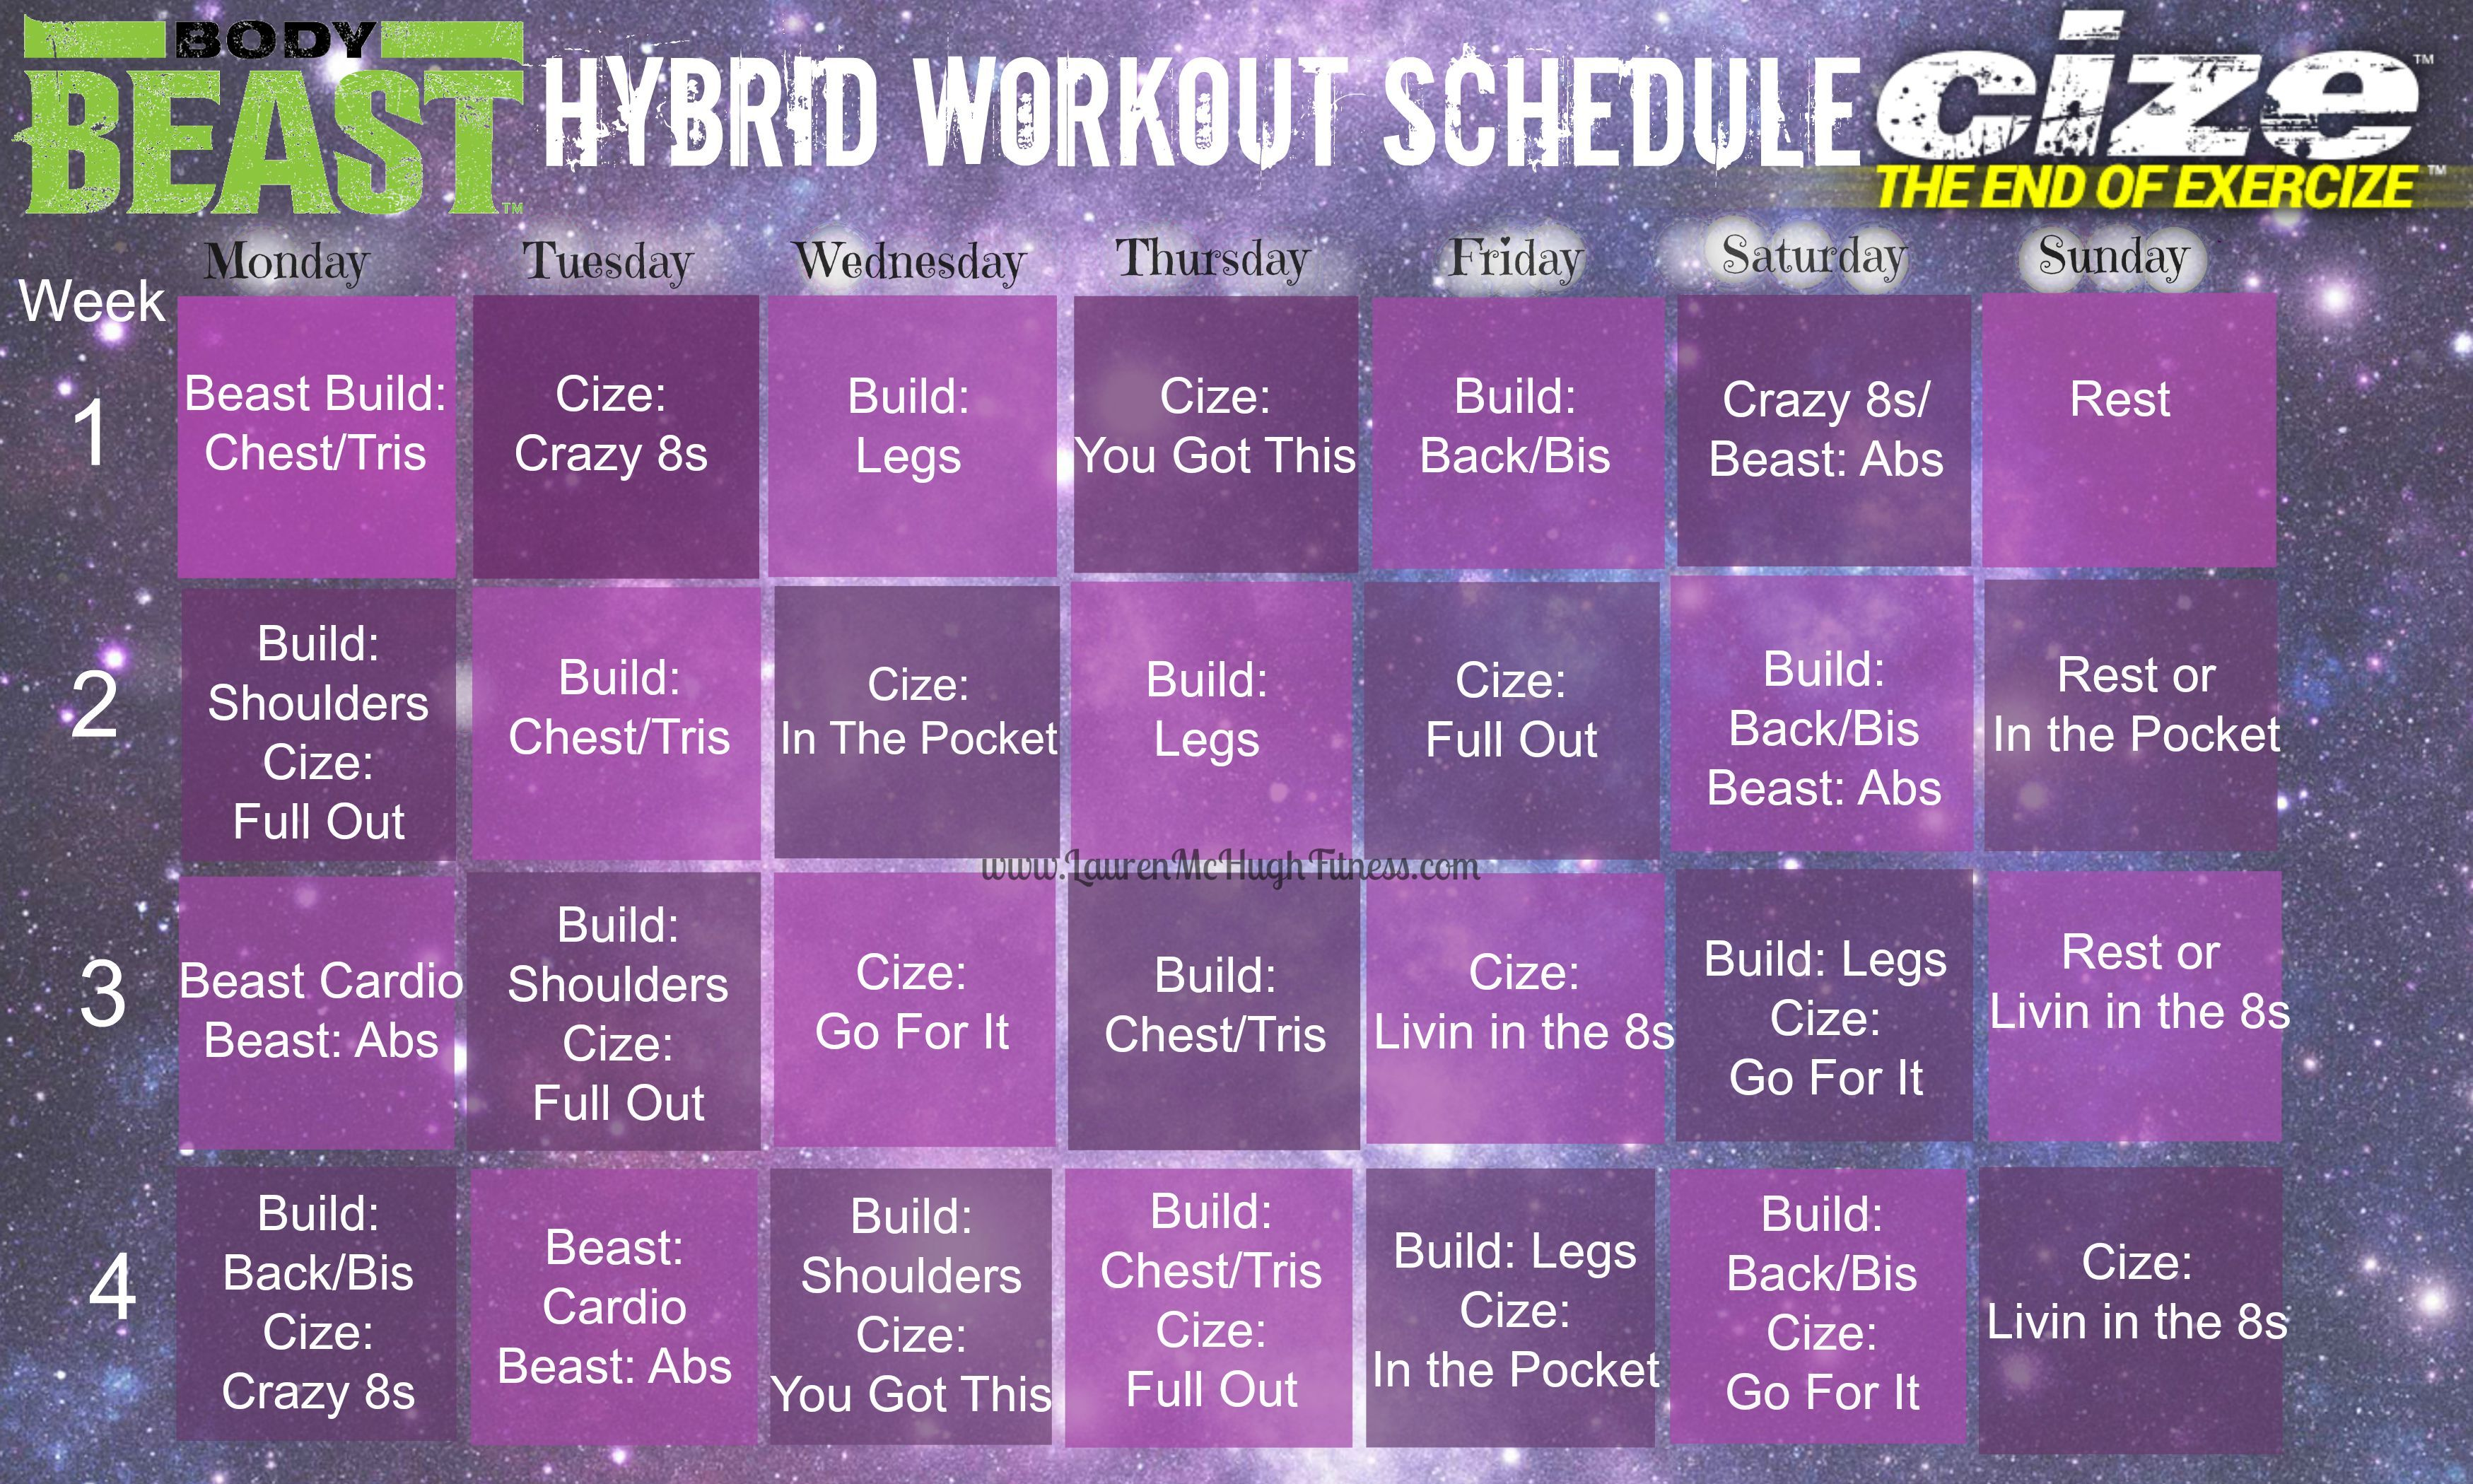 Body Beast And Cize Hybrid Workout Calendar